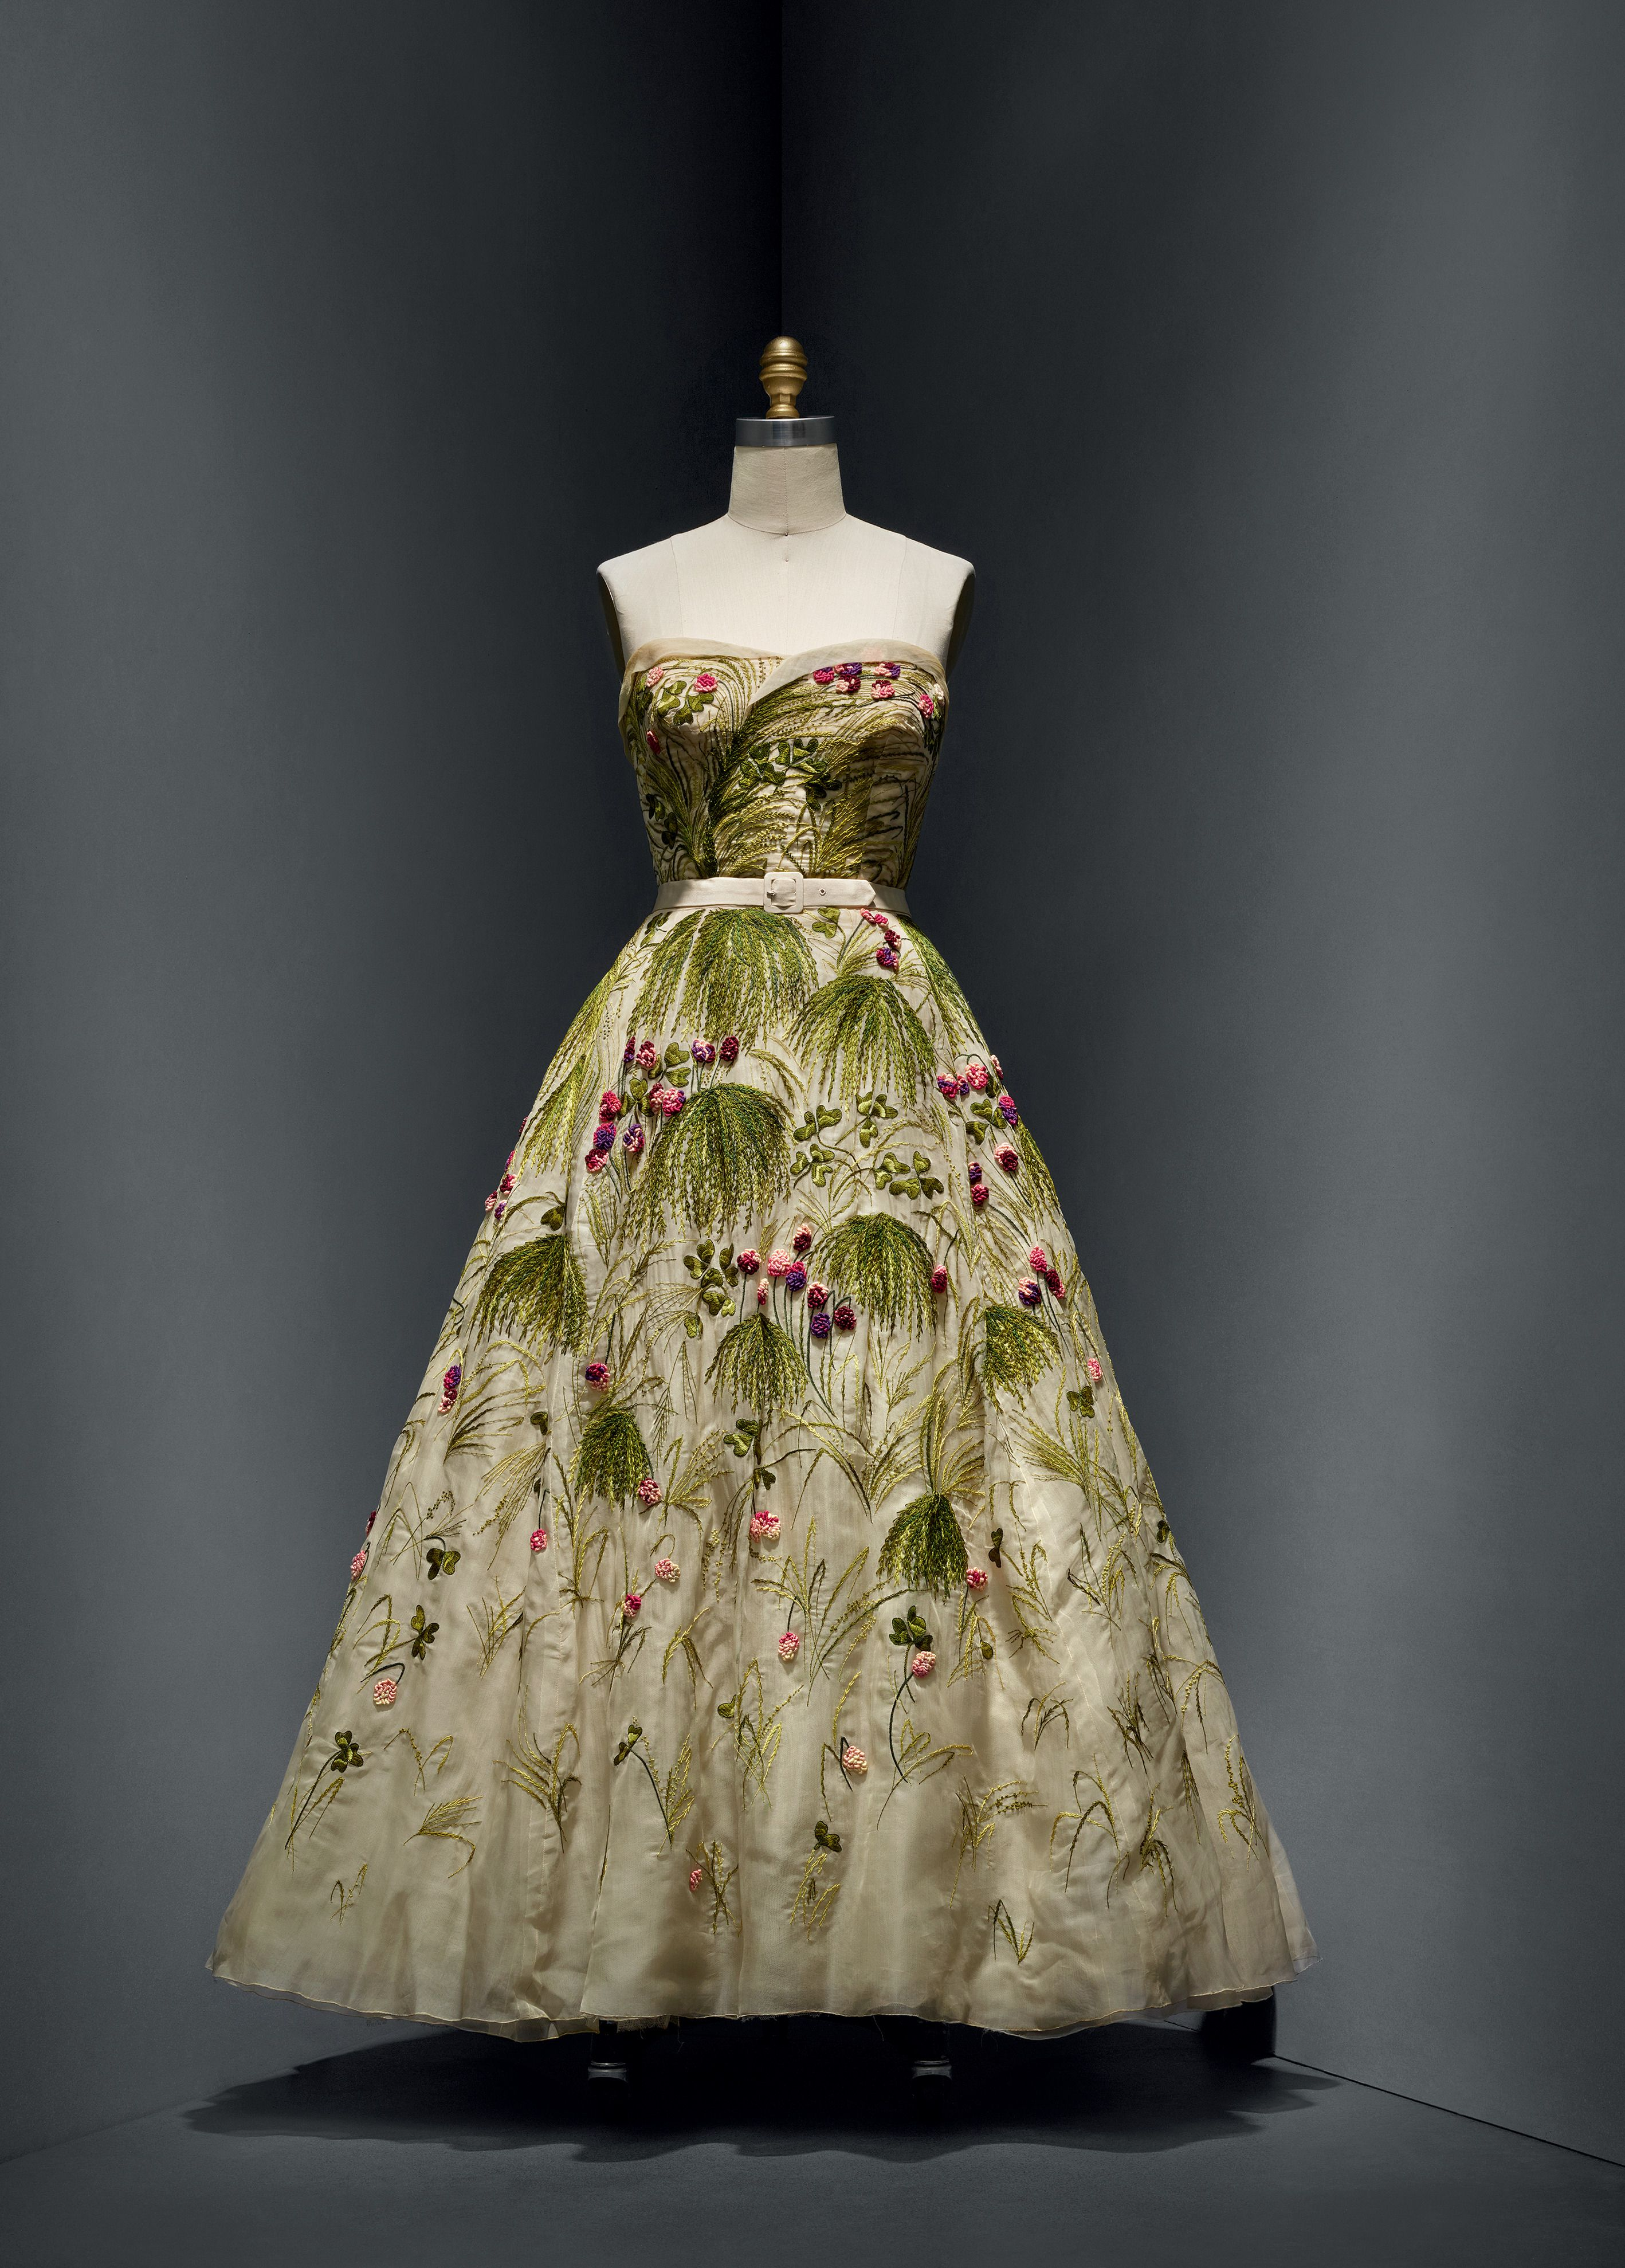 Christian Dior French 1905 1957 For House Of Dior